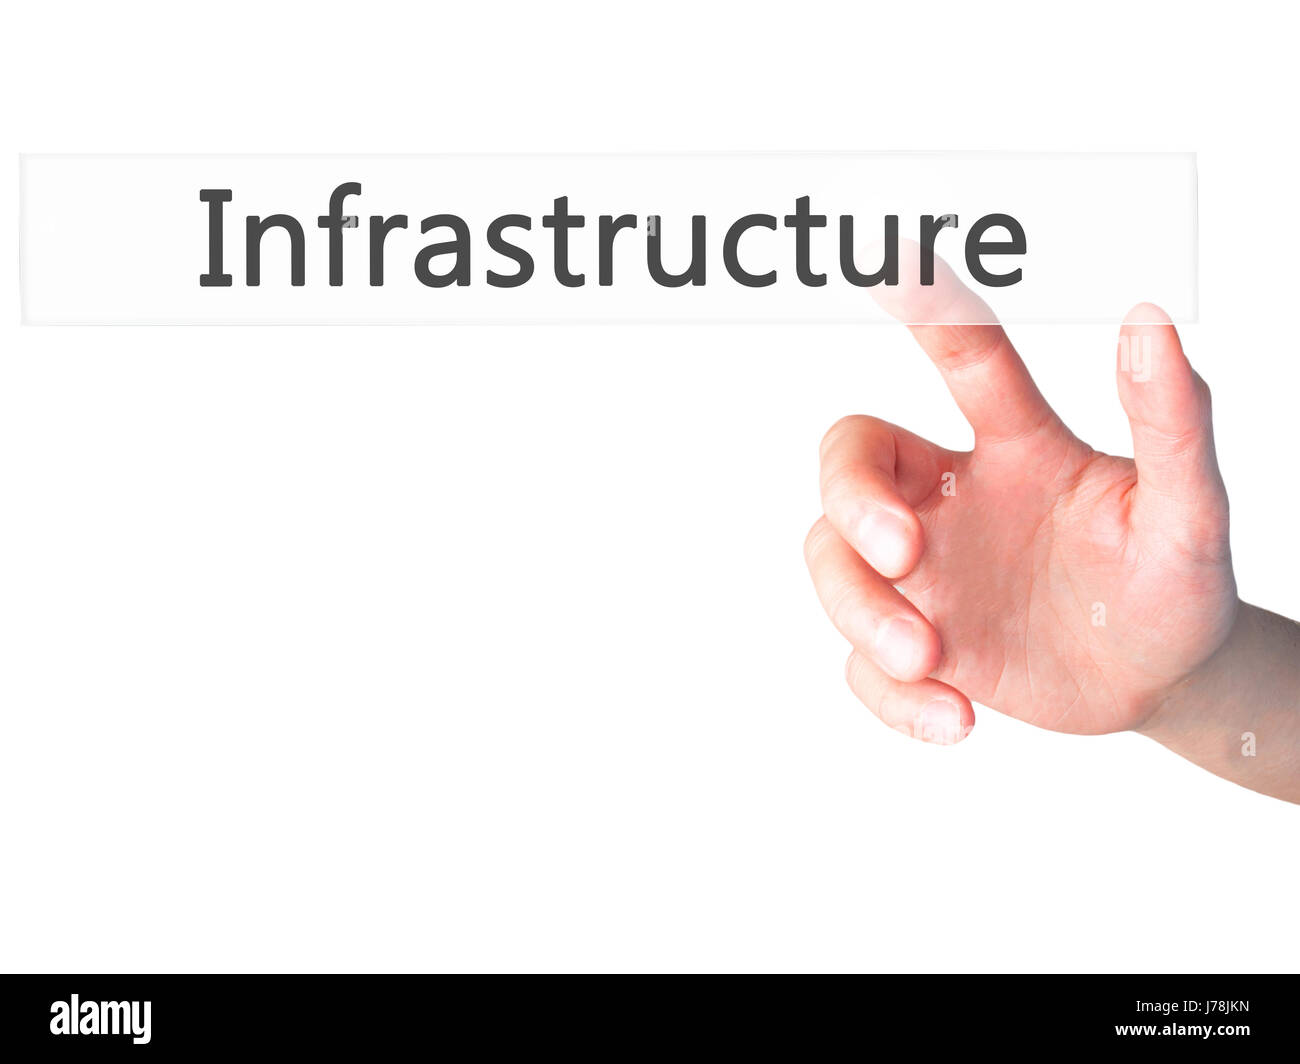 Infrastructure - Hand pressing a button on blurred background concept . Business, technology, internet concept. Stock Photo